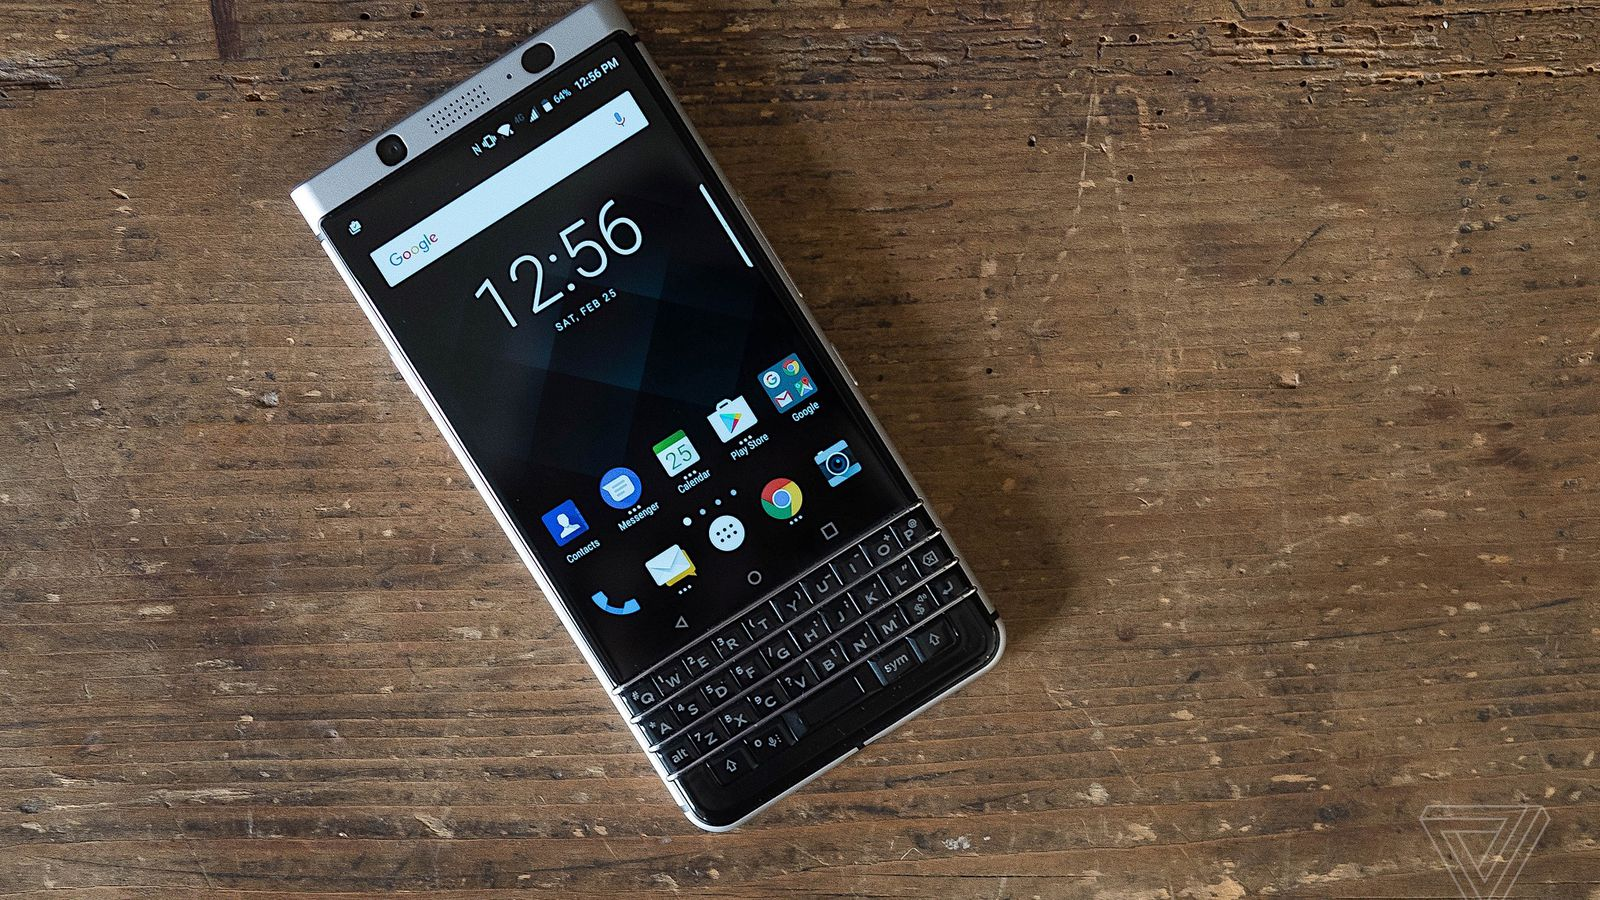 Sprint's BlackBerry KeyOne will stop reinstalling its bloatware